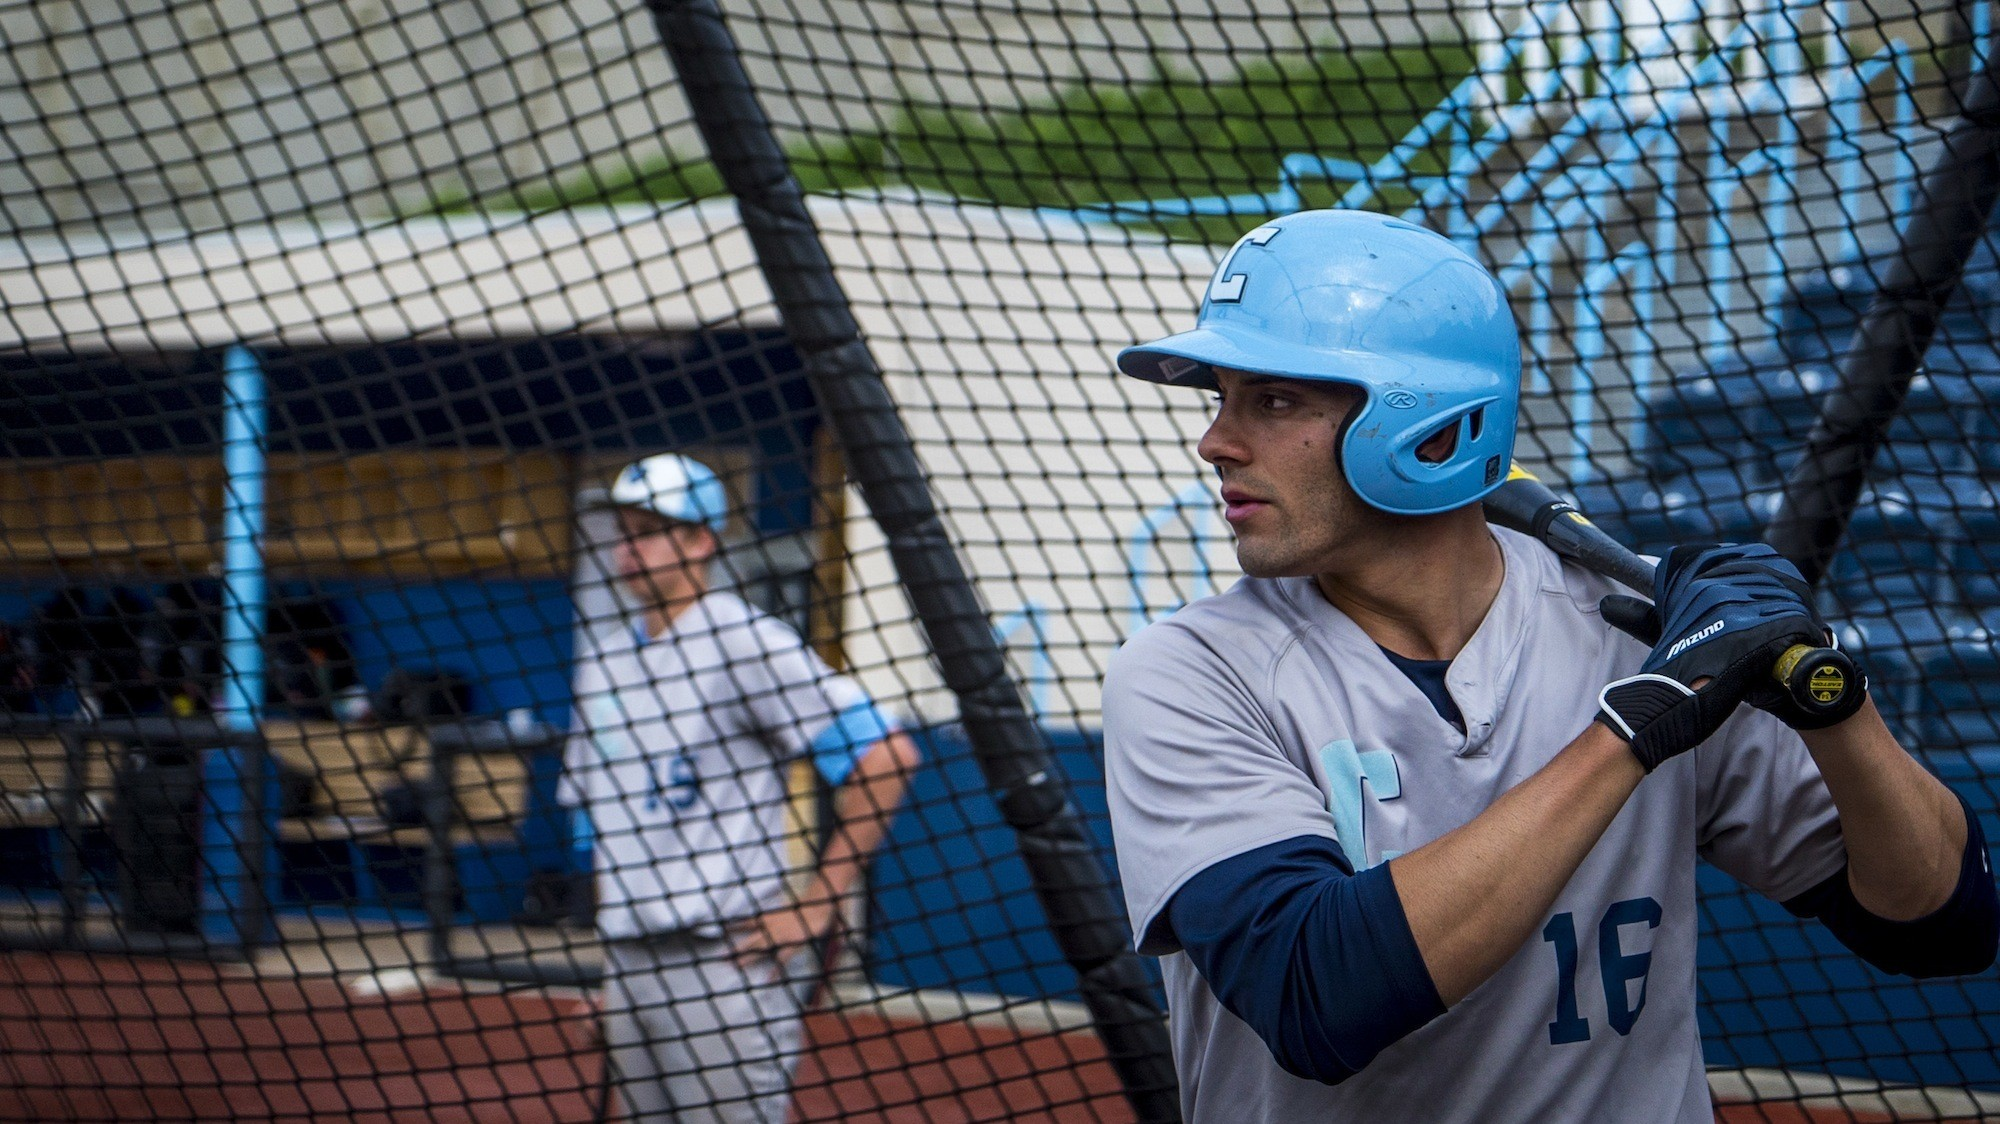 The All-Ivy League Ex-Marine Trying to Make the Majors